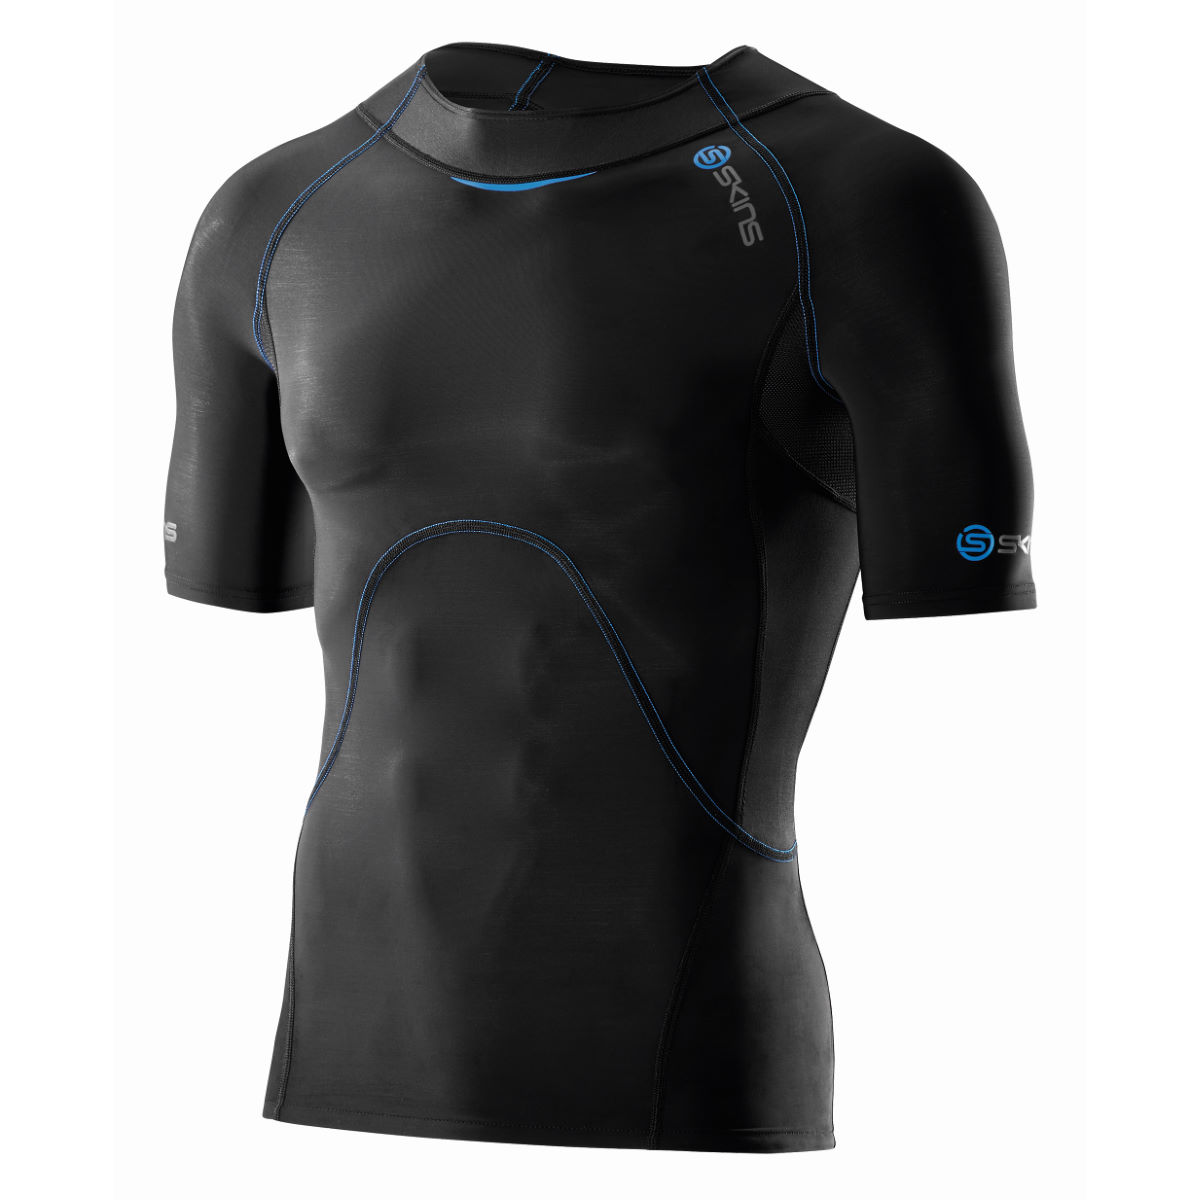 Maillot SKINS Ignite (manches courtes) - S Black / Blue Sous-vêtements compression